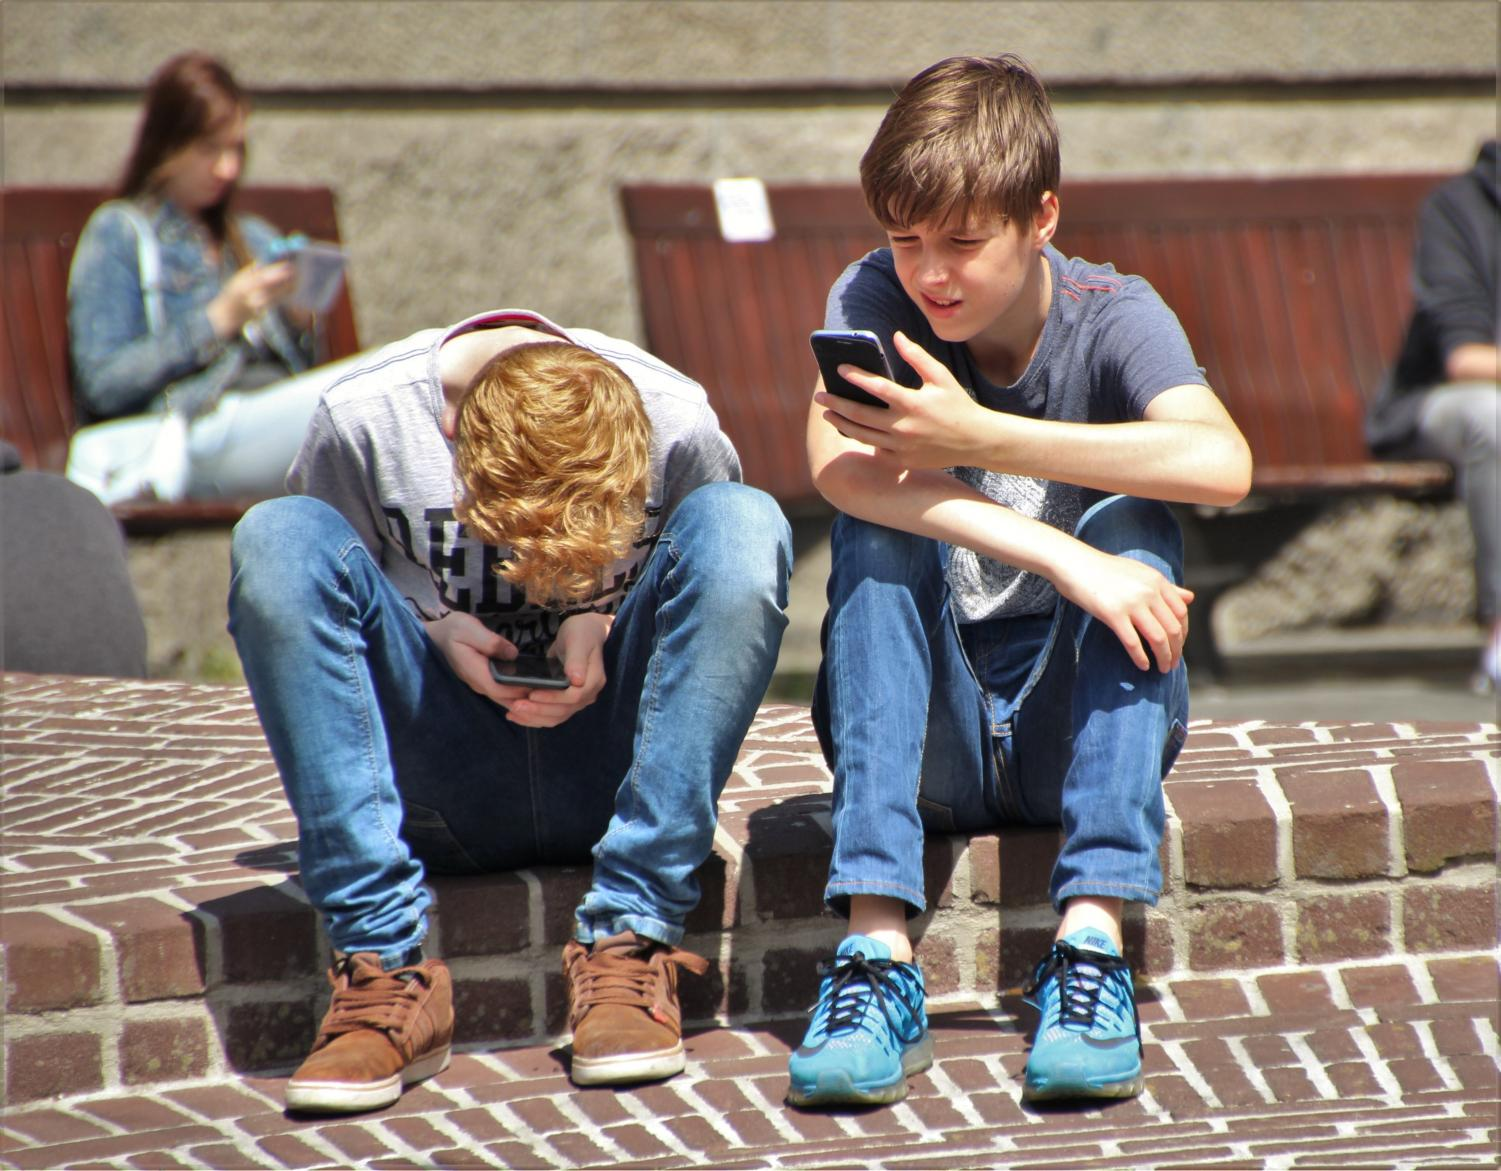 Two young boys sit adjacent to one another yet are not socializing. Given that the average age of cell phone users is so young nowadays, this sight is not a rarity.